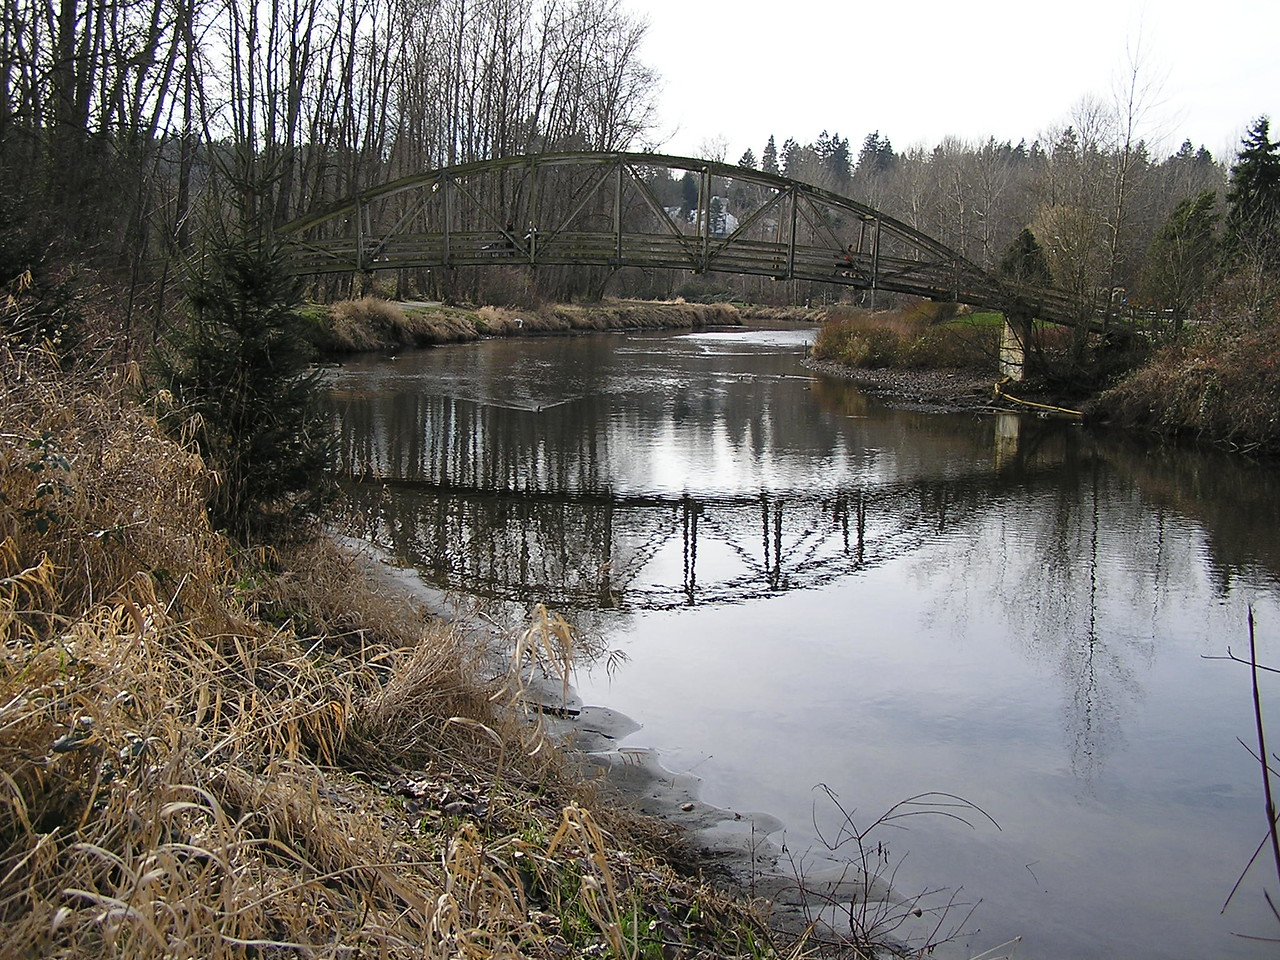 We crossed this foot bridge in the town of Bothell.